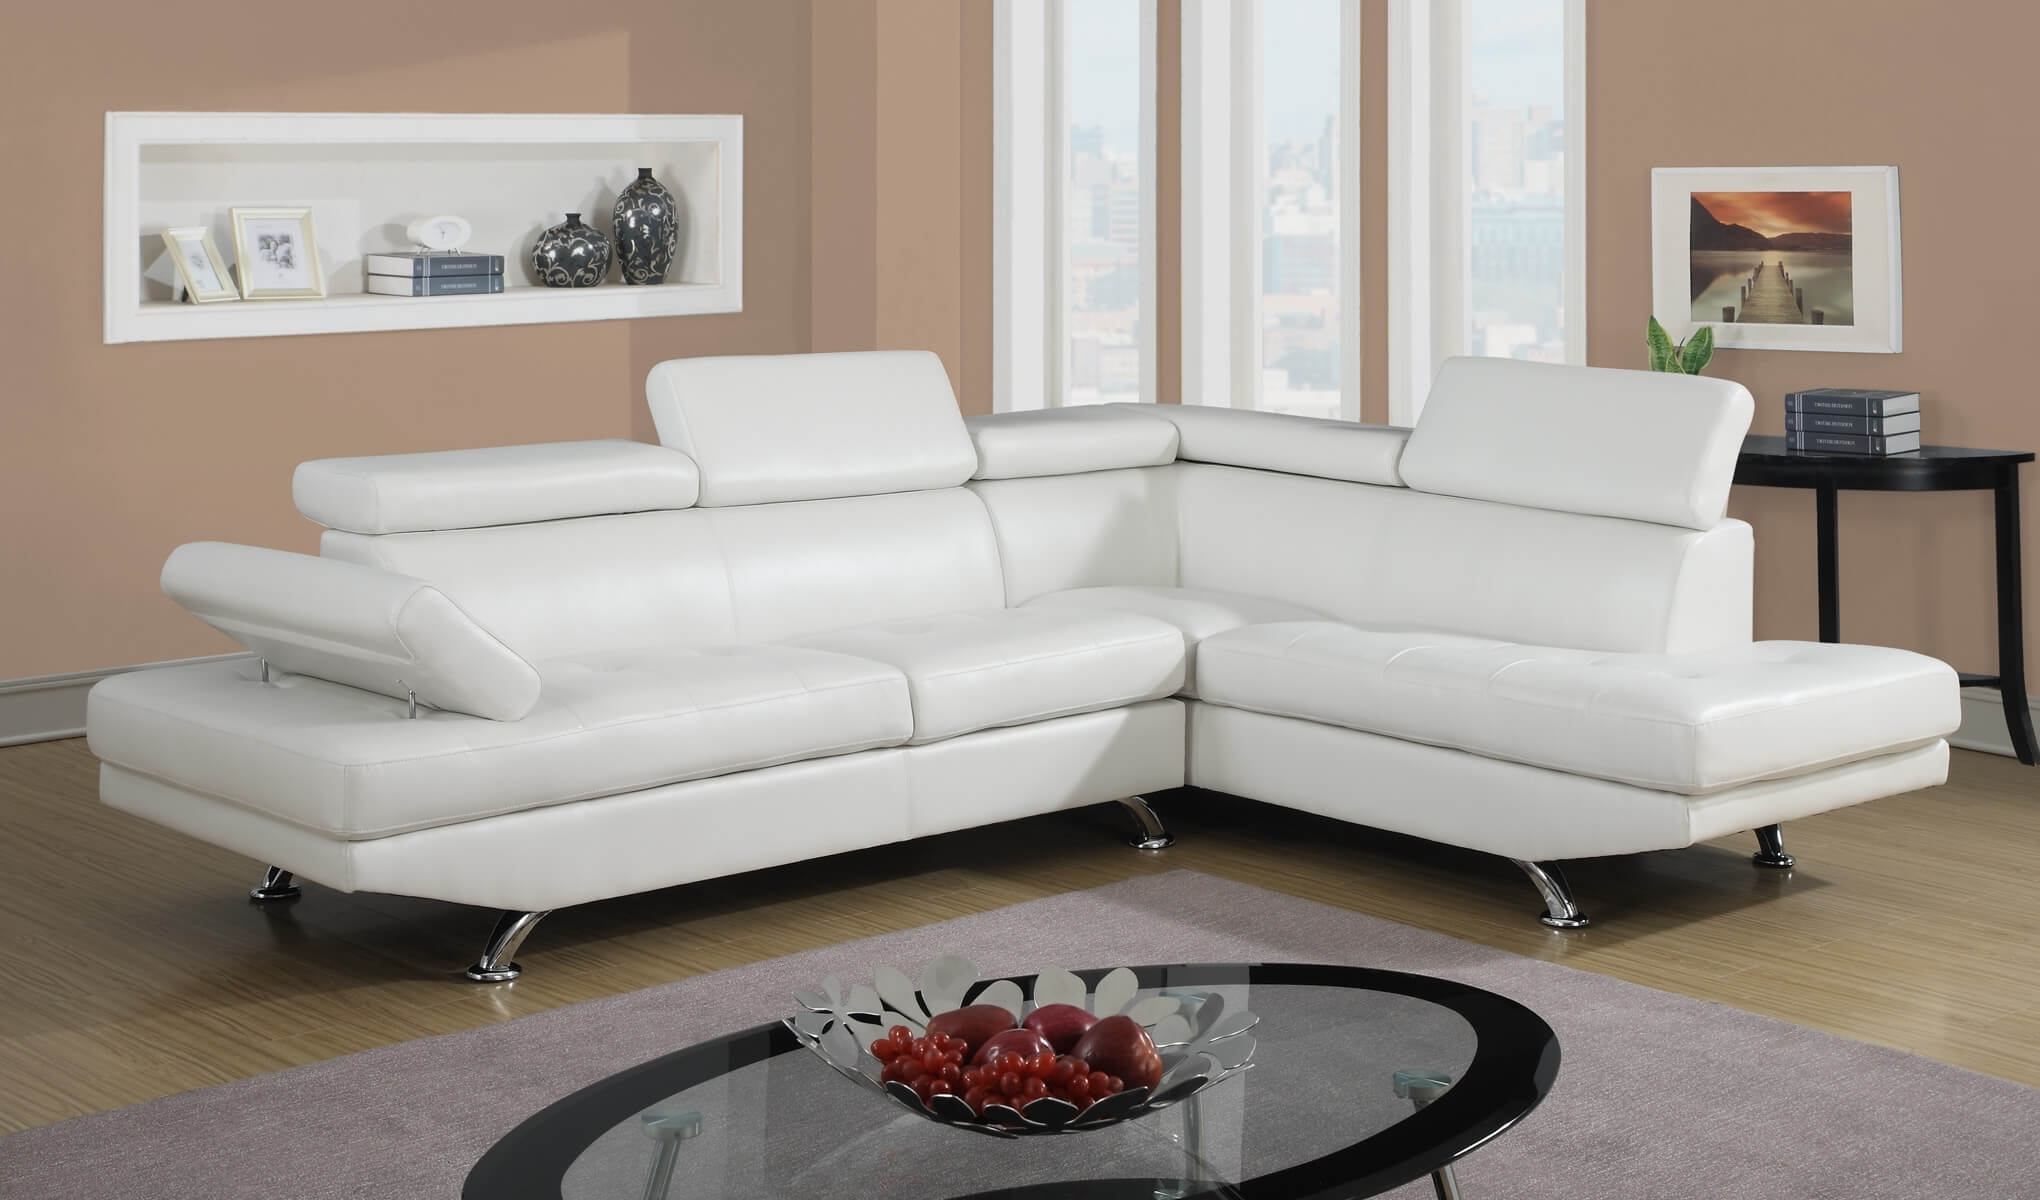 White Sectional Sofas The Best Sofa For Sale Ikea Leather Canada Within Canada Sale Sectional Sofas (View 4 of 10)